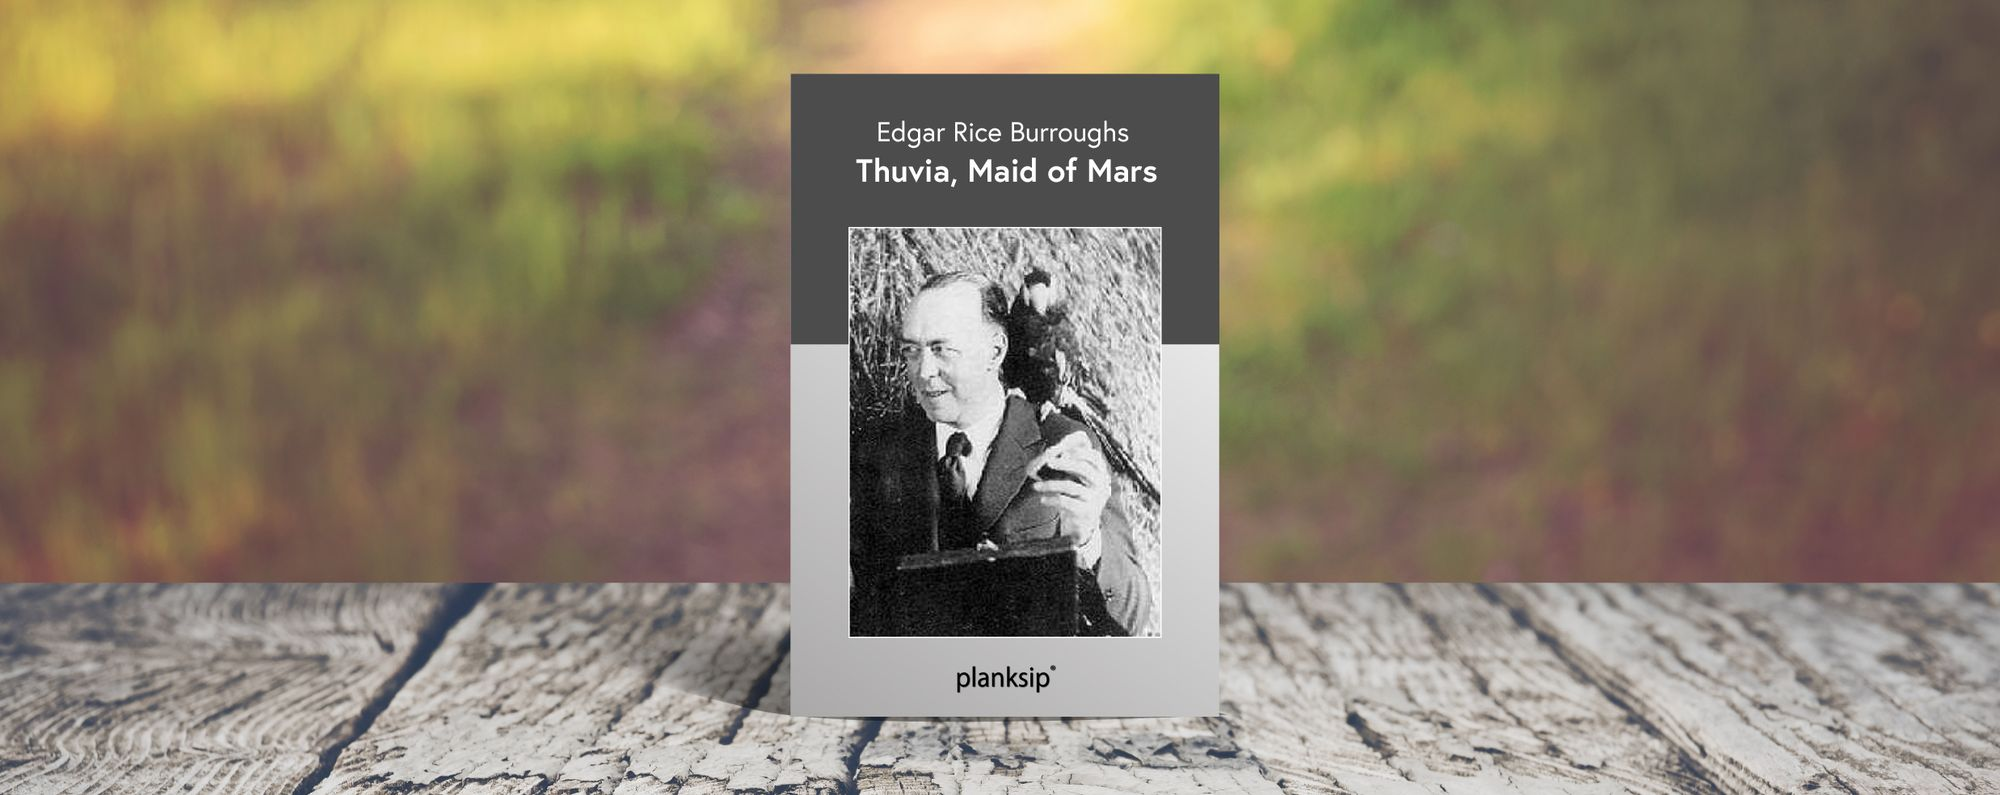 Thuvia, Maid of Mars by Edgar Rice Burroughs (1875-1950). Published by planksip